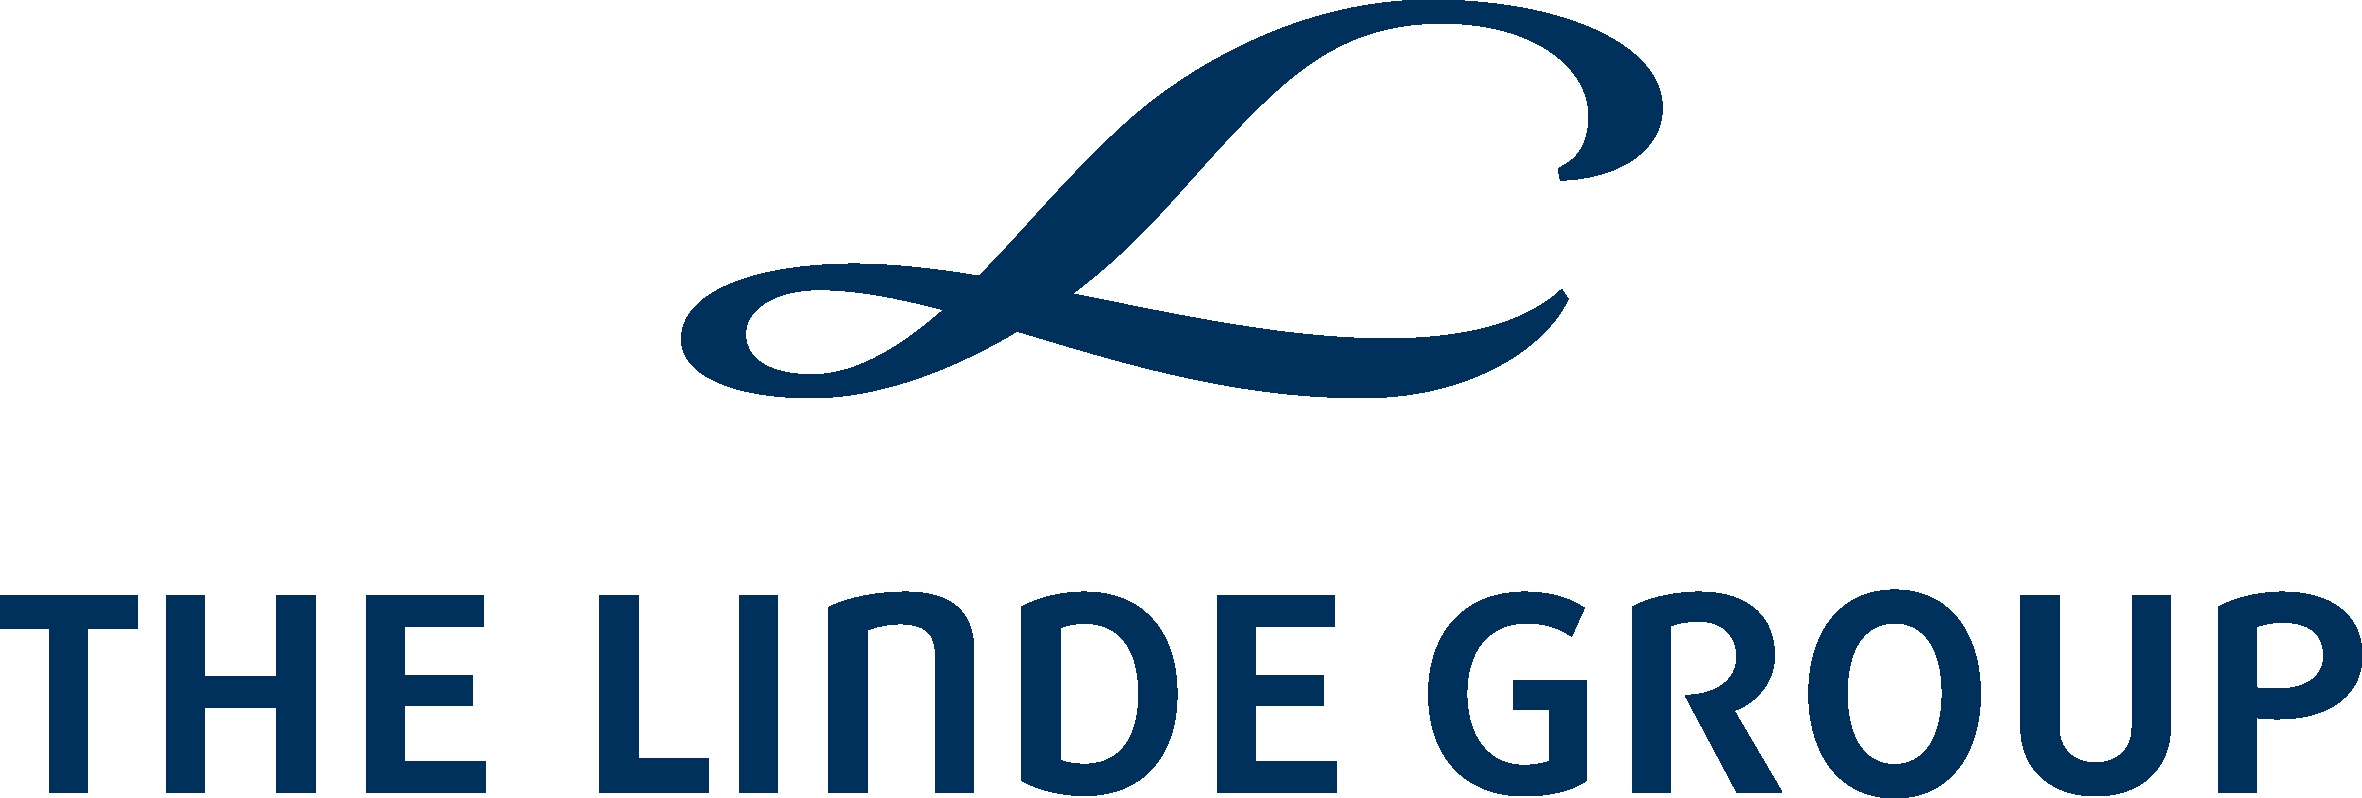 The Linde Group - The Linde Group is a world leading supplier of industrial, process and speciality gases and is one of the most profitable engineering companies. Linde products and services can be found in nearly every industry, in more than 100 countries.